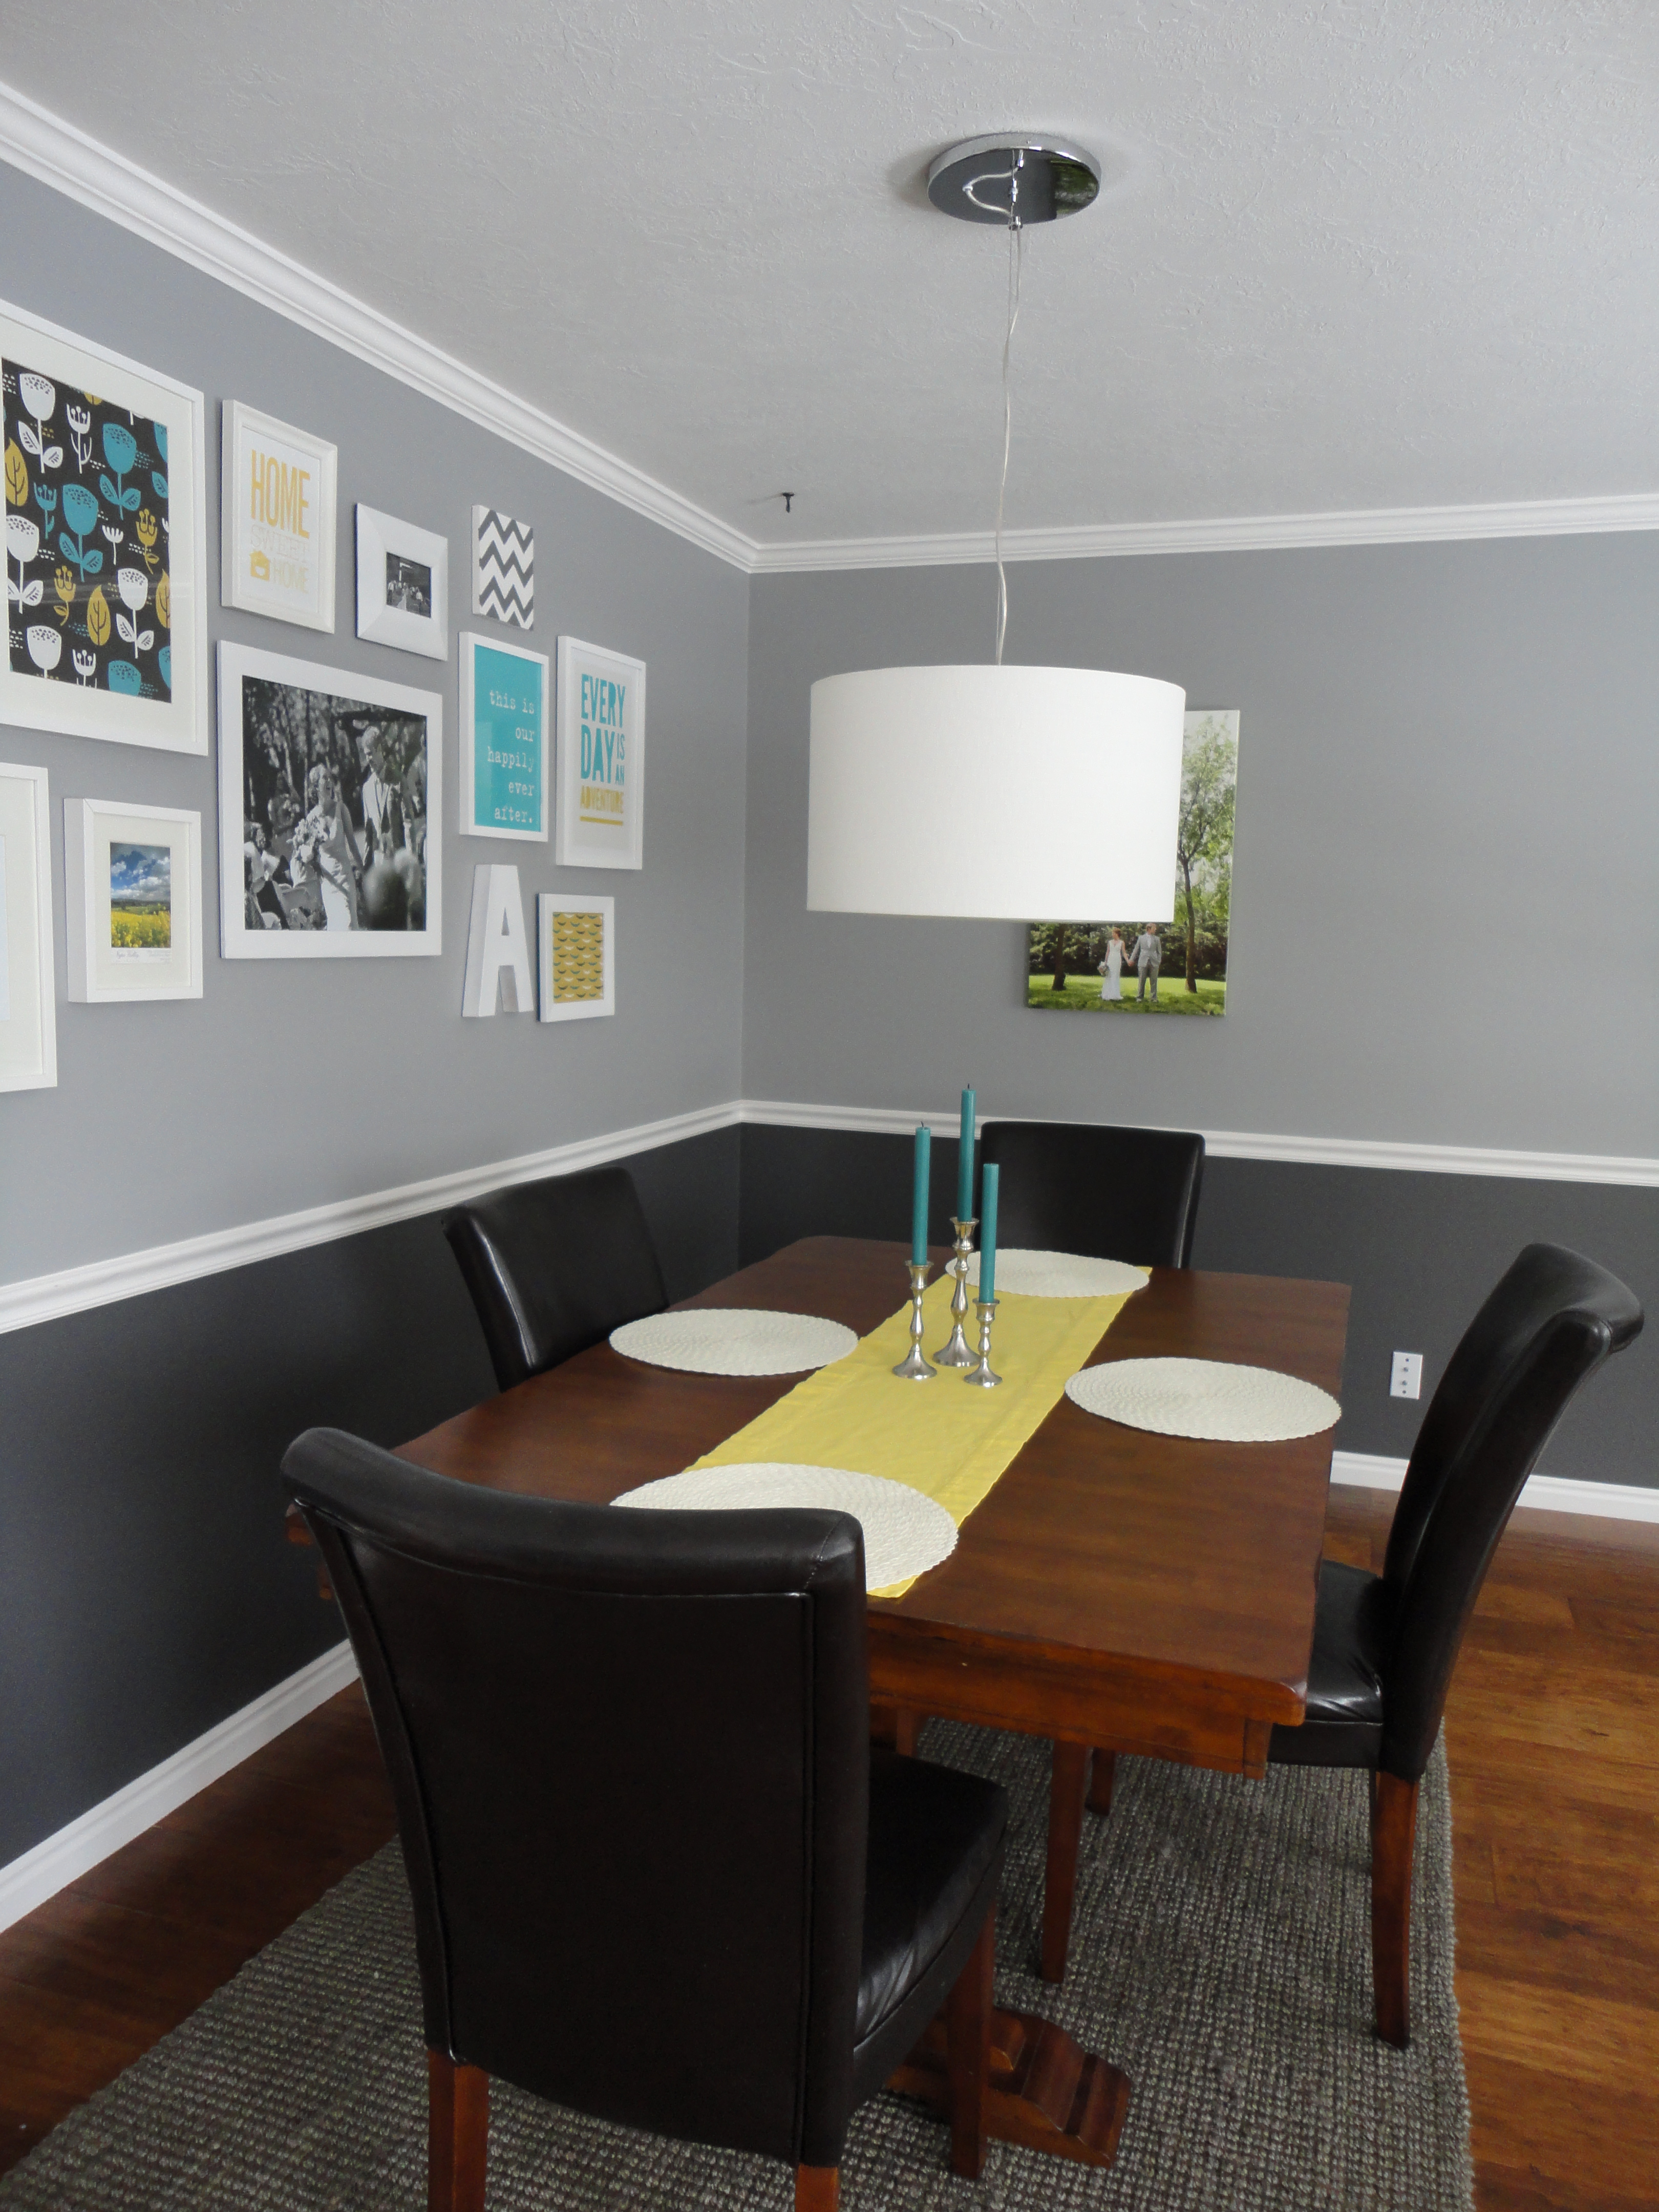 366 85 91 run knit hitched - Dining room wall colors ...